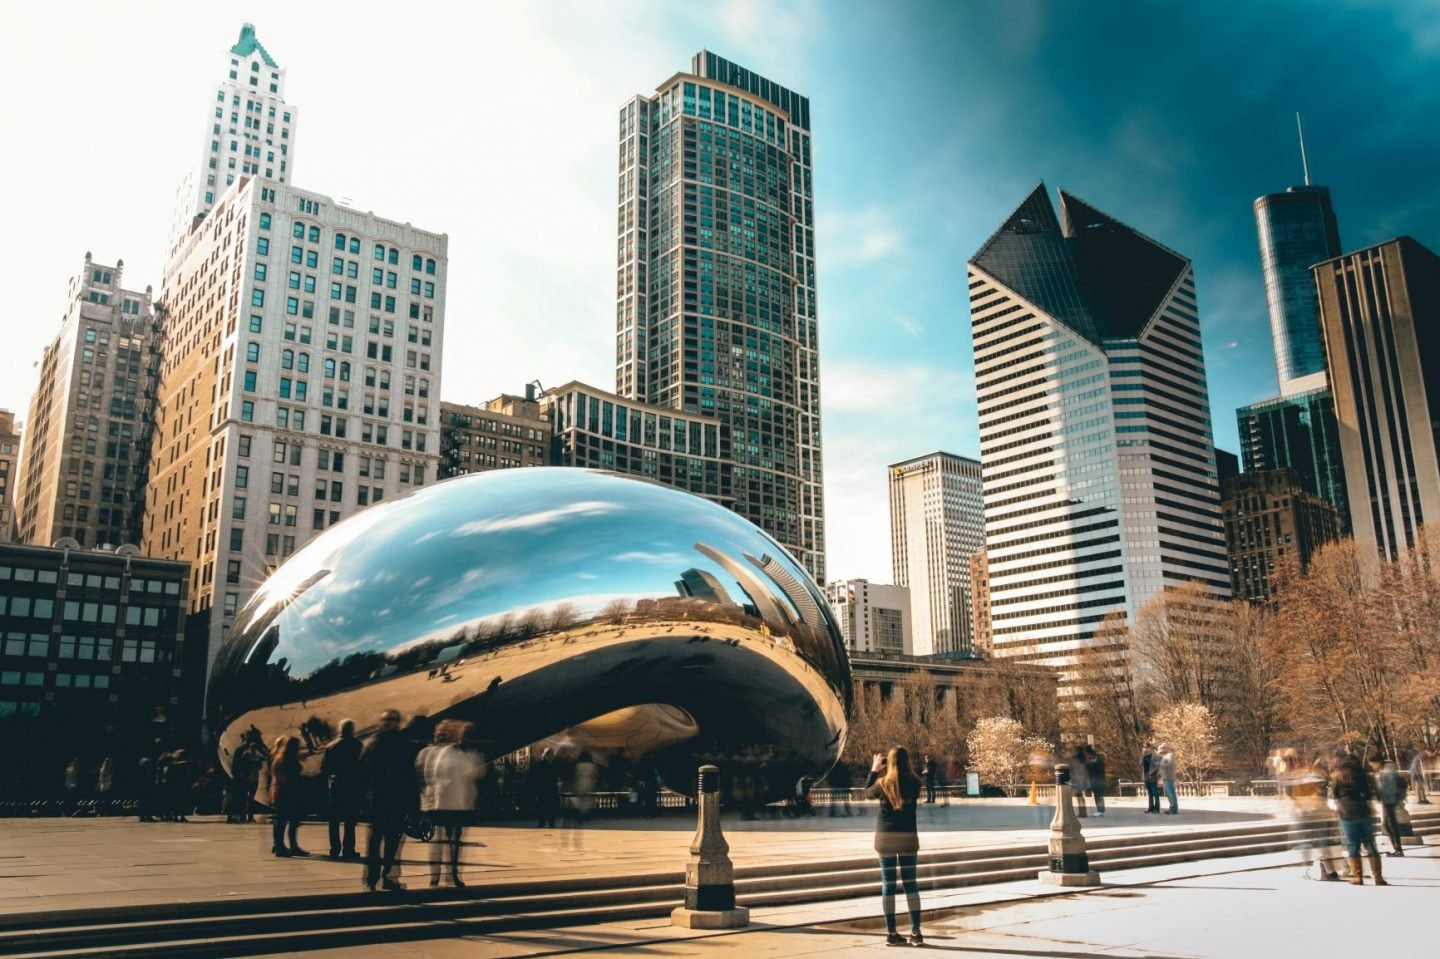 Famous Landmarks Quiz Questions and Answers - Cloud Gate